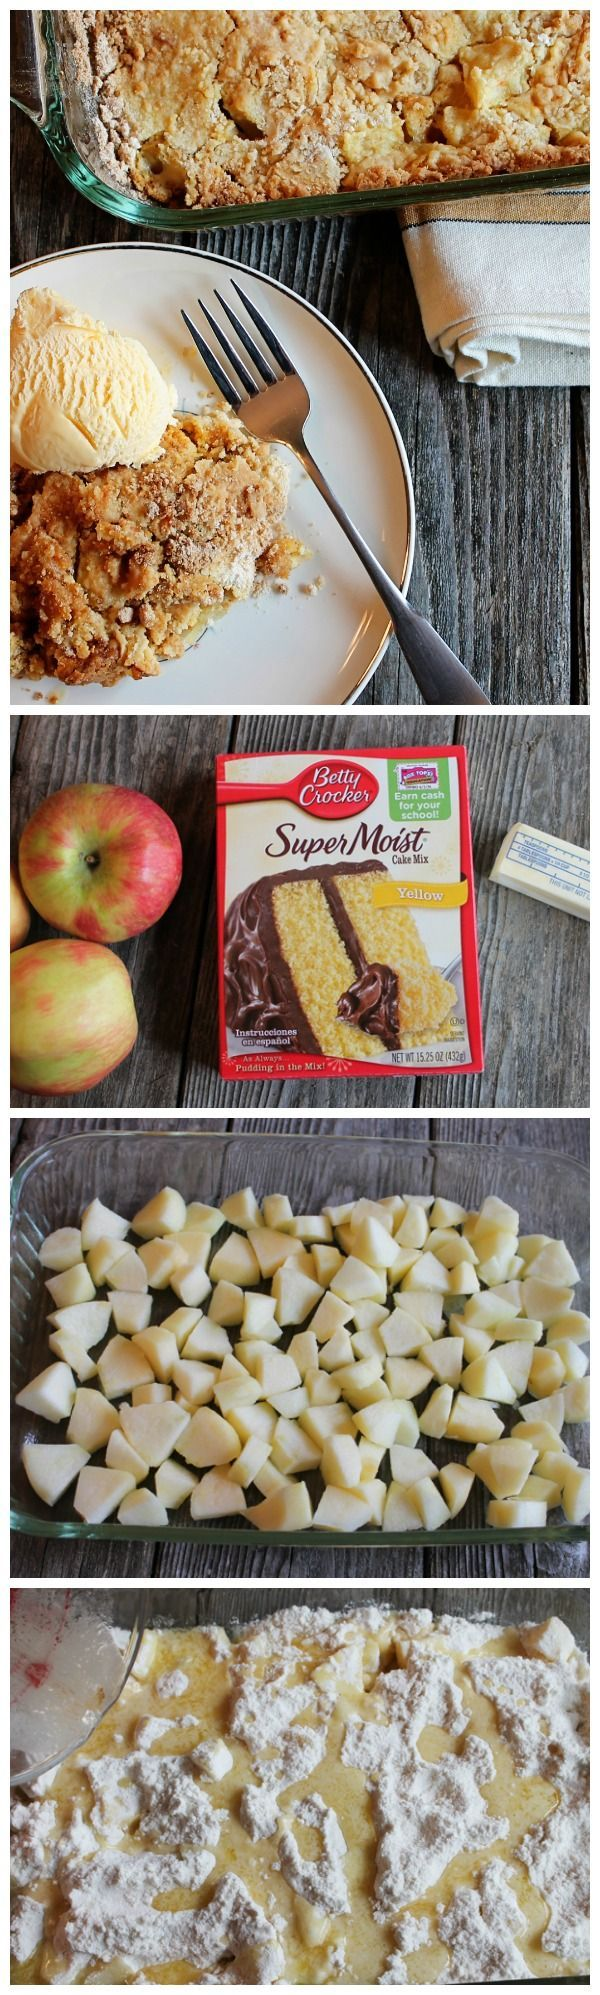 Fresh apples + Betty Crocker yellow cake + melted butter = easy fall dessert.